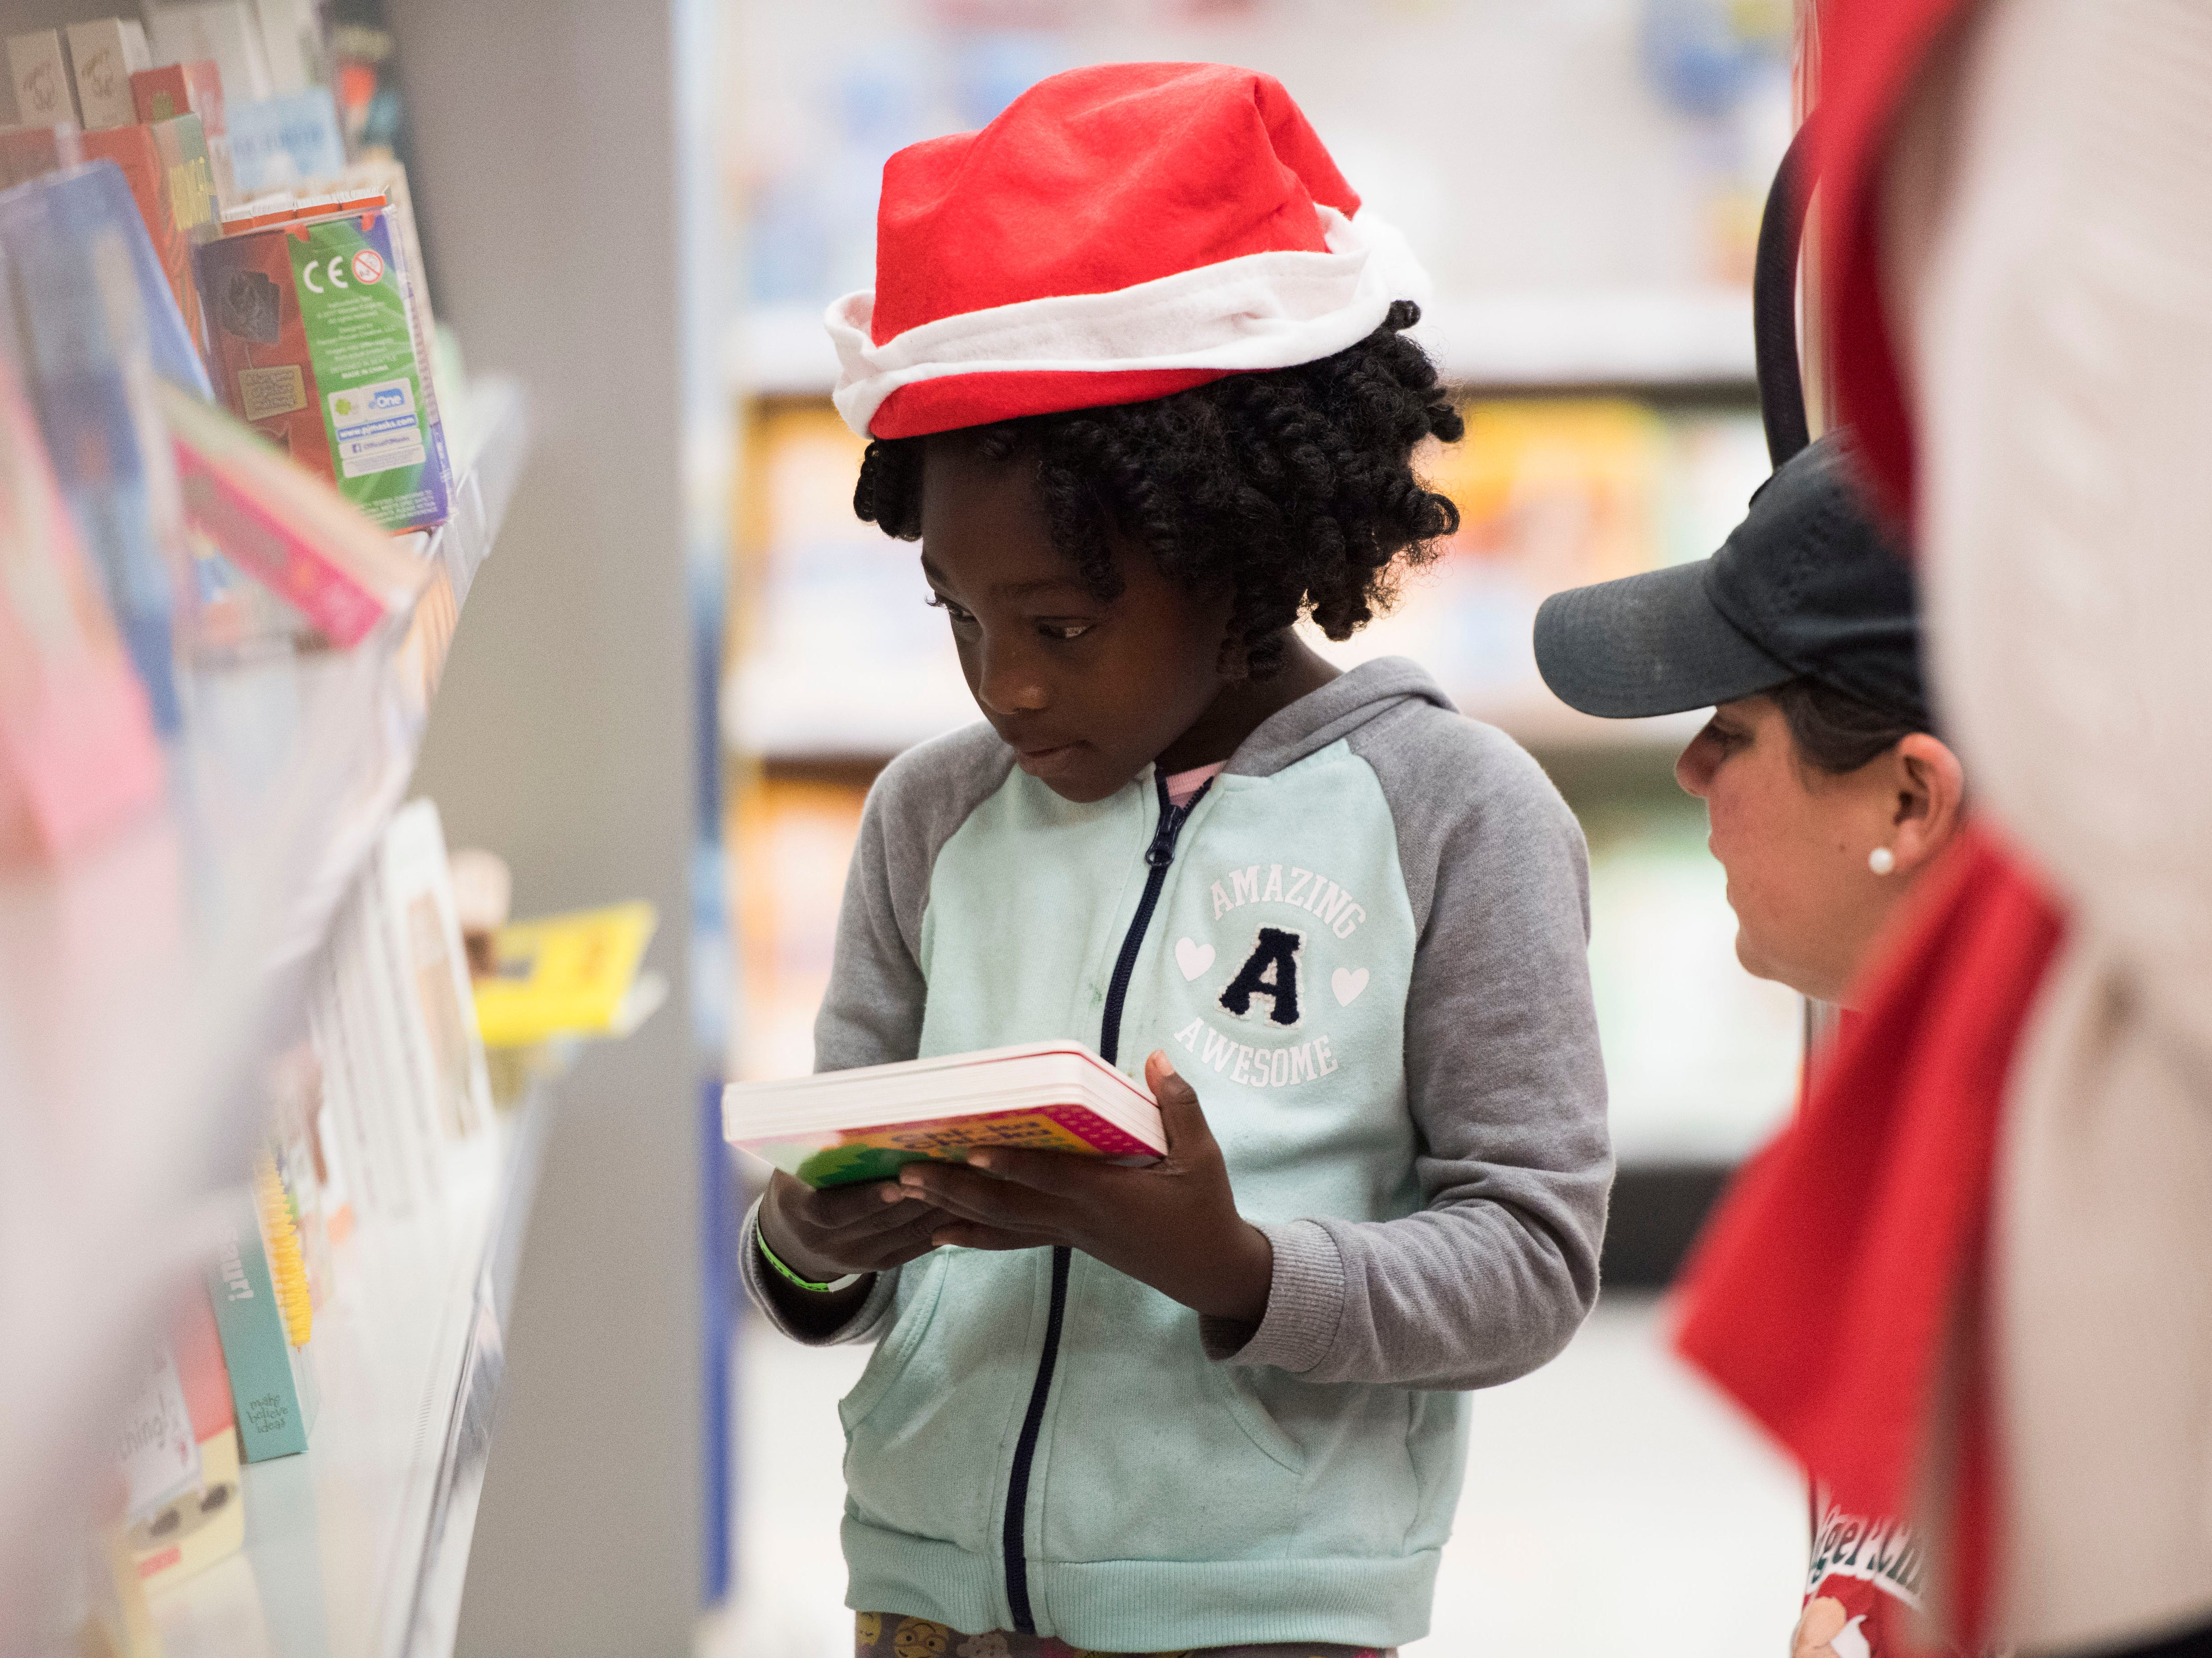 Jah'nae, 6, picks out a book at the Target on Clinton Highway during the annual Weigel's Family Christmas Saturday, Dec. 1, 2018. This is the 21st year Weigel's has held the shopping spree for local underprivileged children.